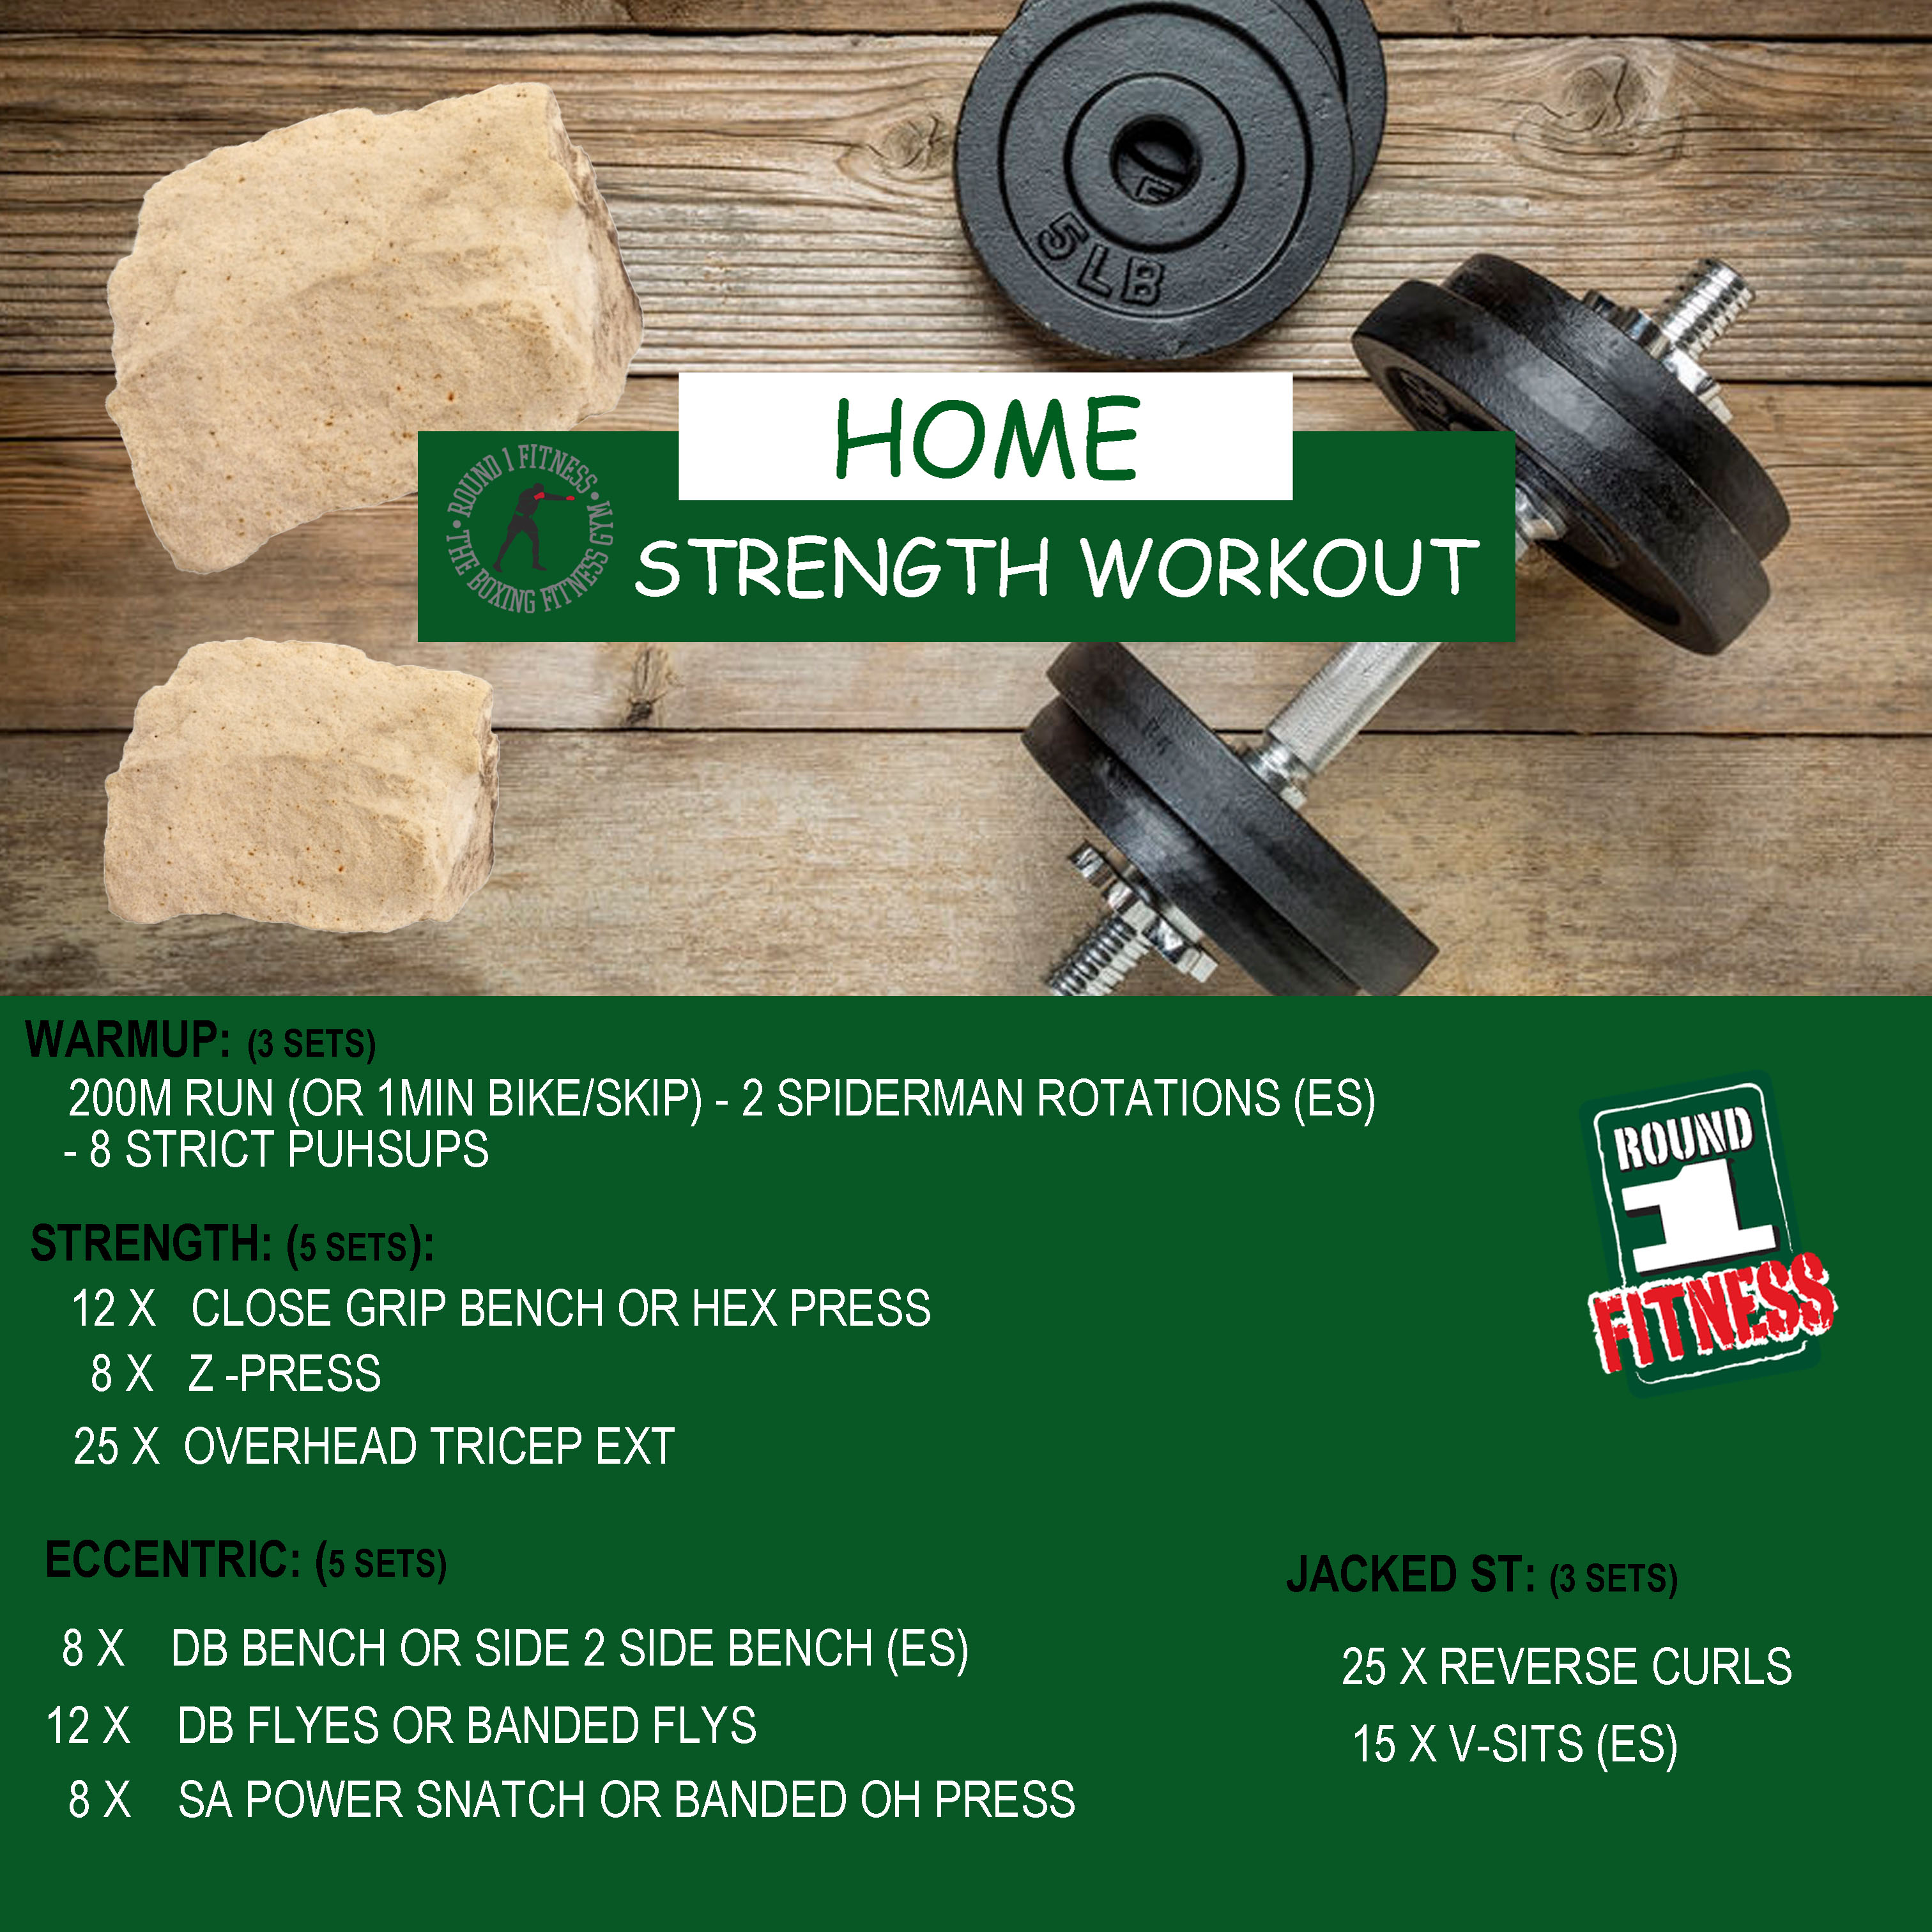 COVID Lockdown#3 – Round 1 @ Home Strength – Workout 6, April 30th 2021